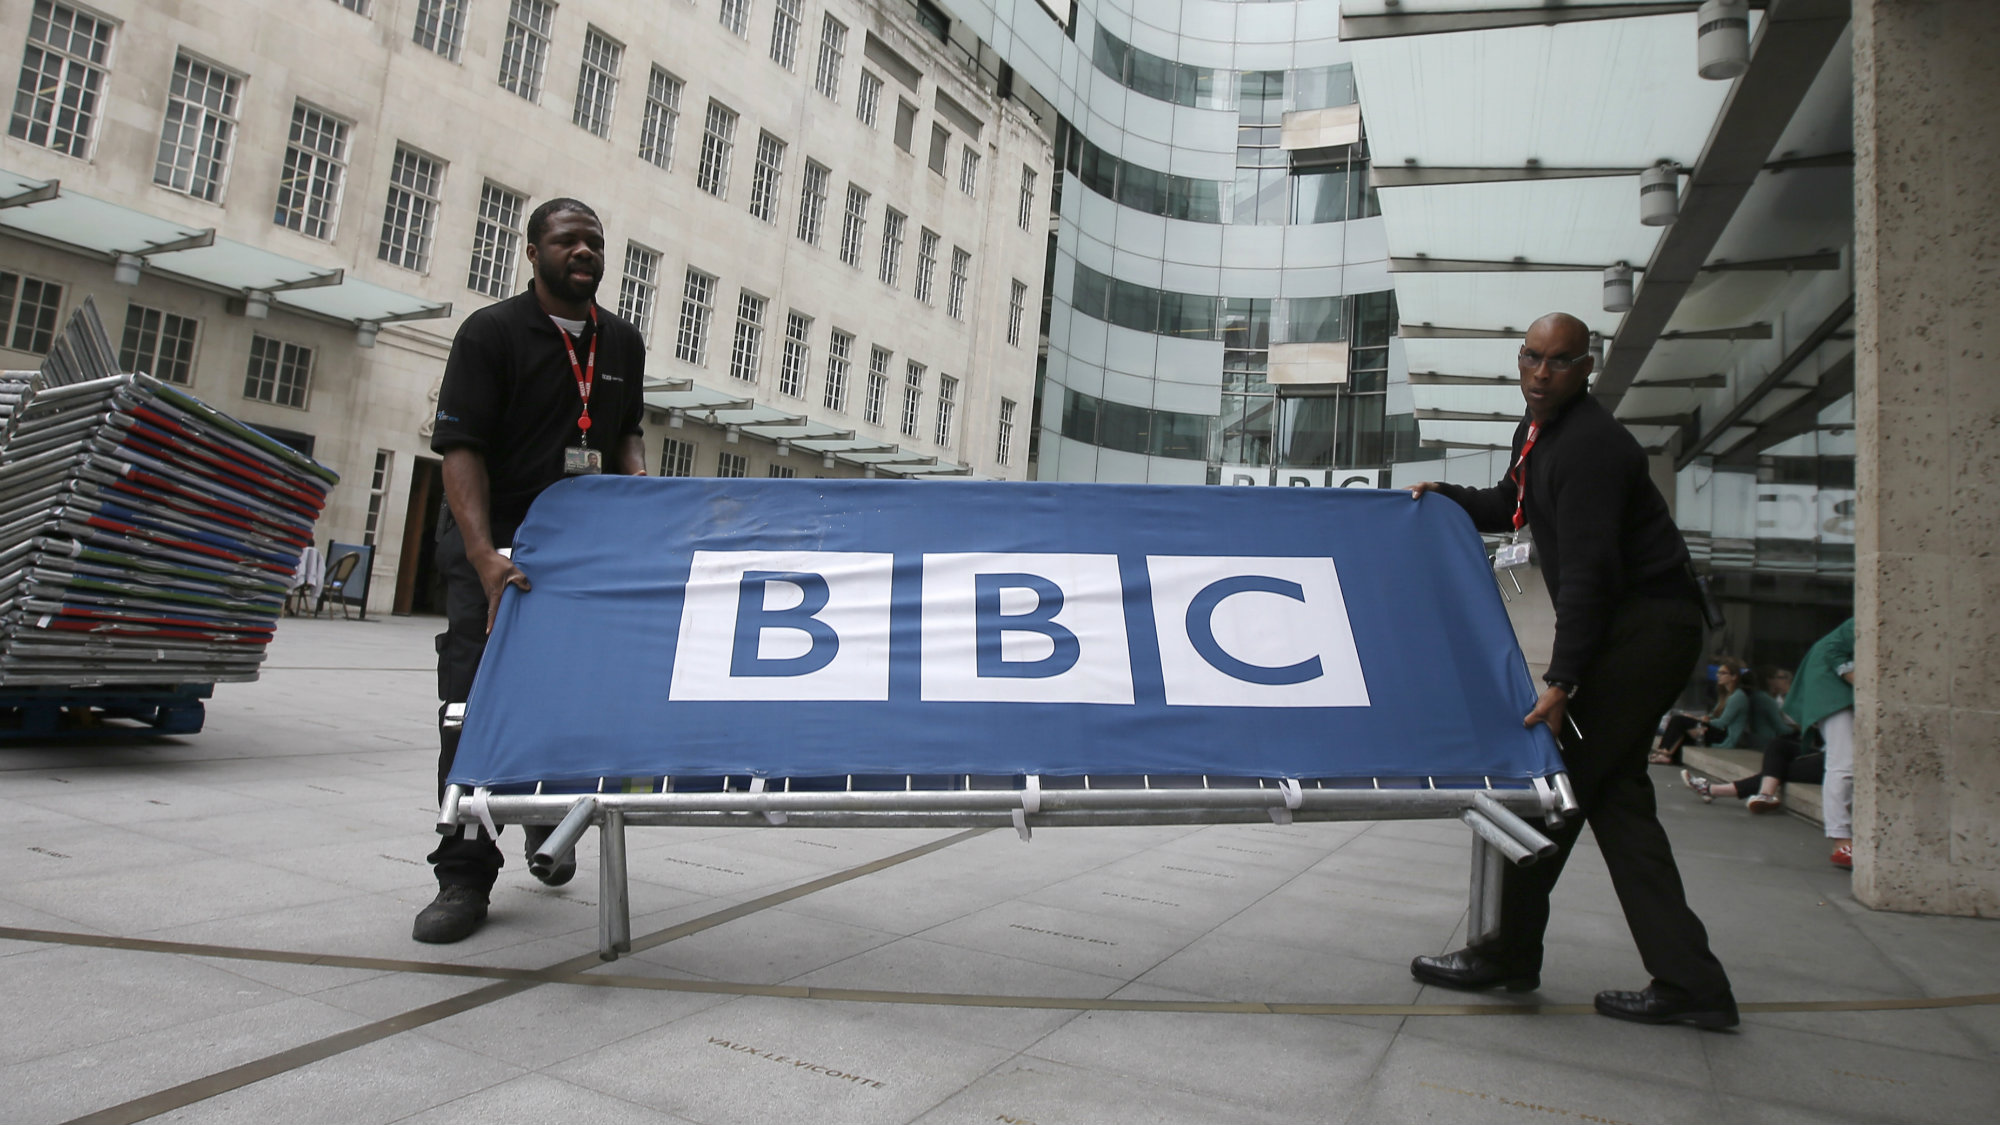 BBC workers place barriers near to the main entrance of the BBC headquarters and studios in Portland Place, London, Britain, July 16, 2015.